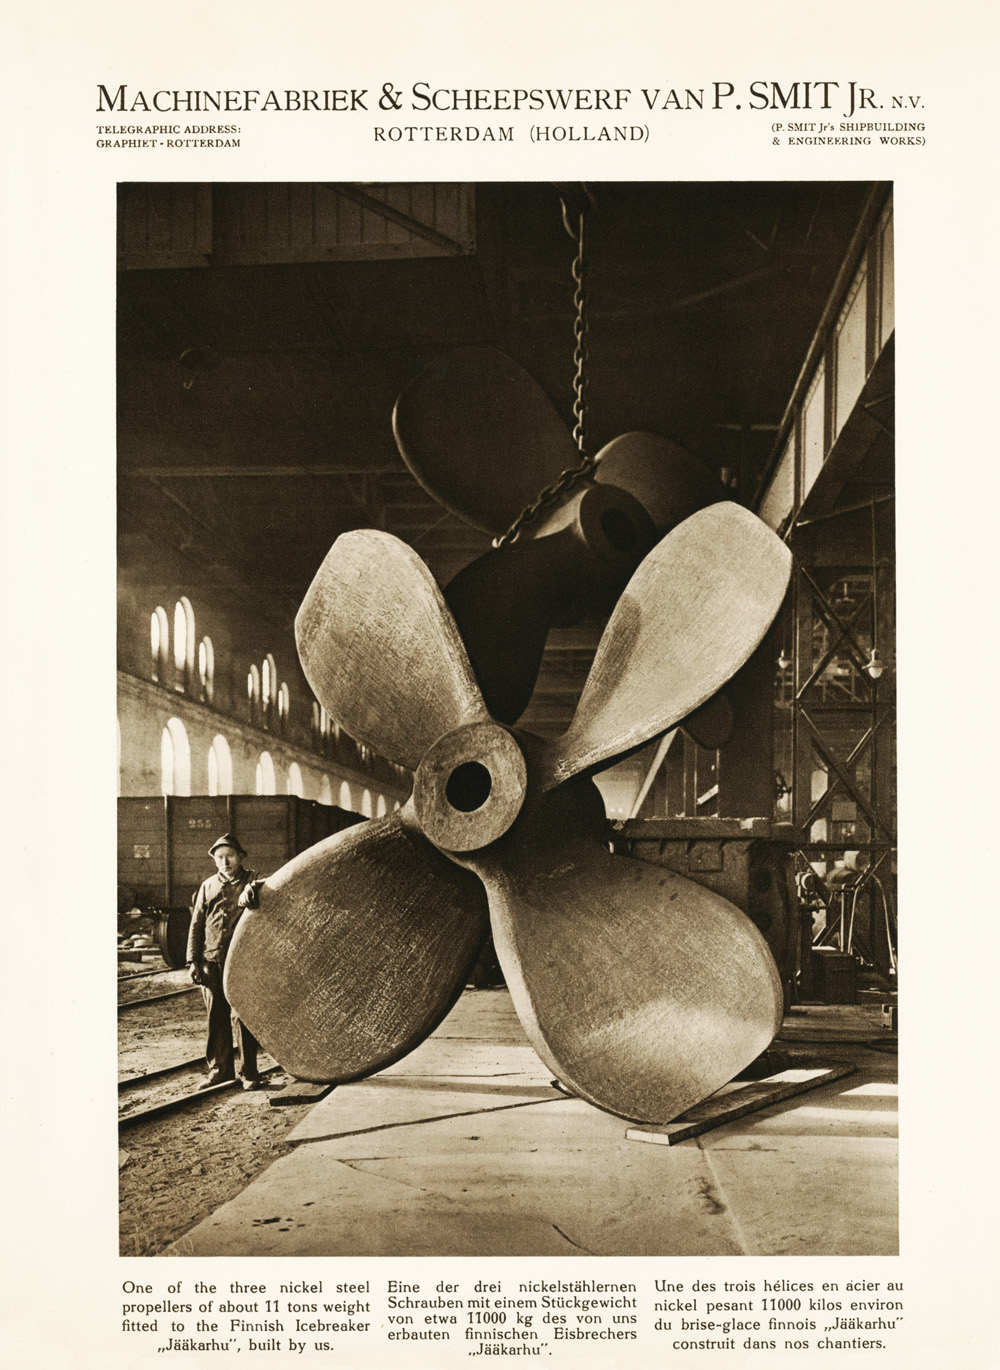 Photo: Marketing materials from Machinefabriek & Scheepswerf van P. Smit Jr. N.V. with the 11 tons propellor for the Finish Icebreaker Jäänmurtaja Jääkarhu, 1926, photographer unknown.